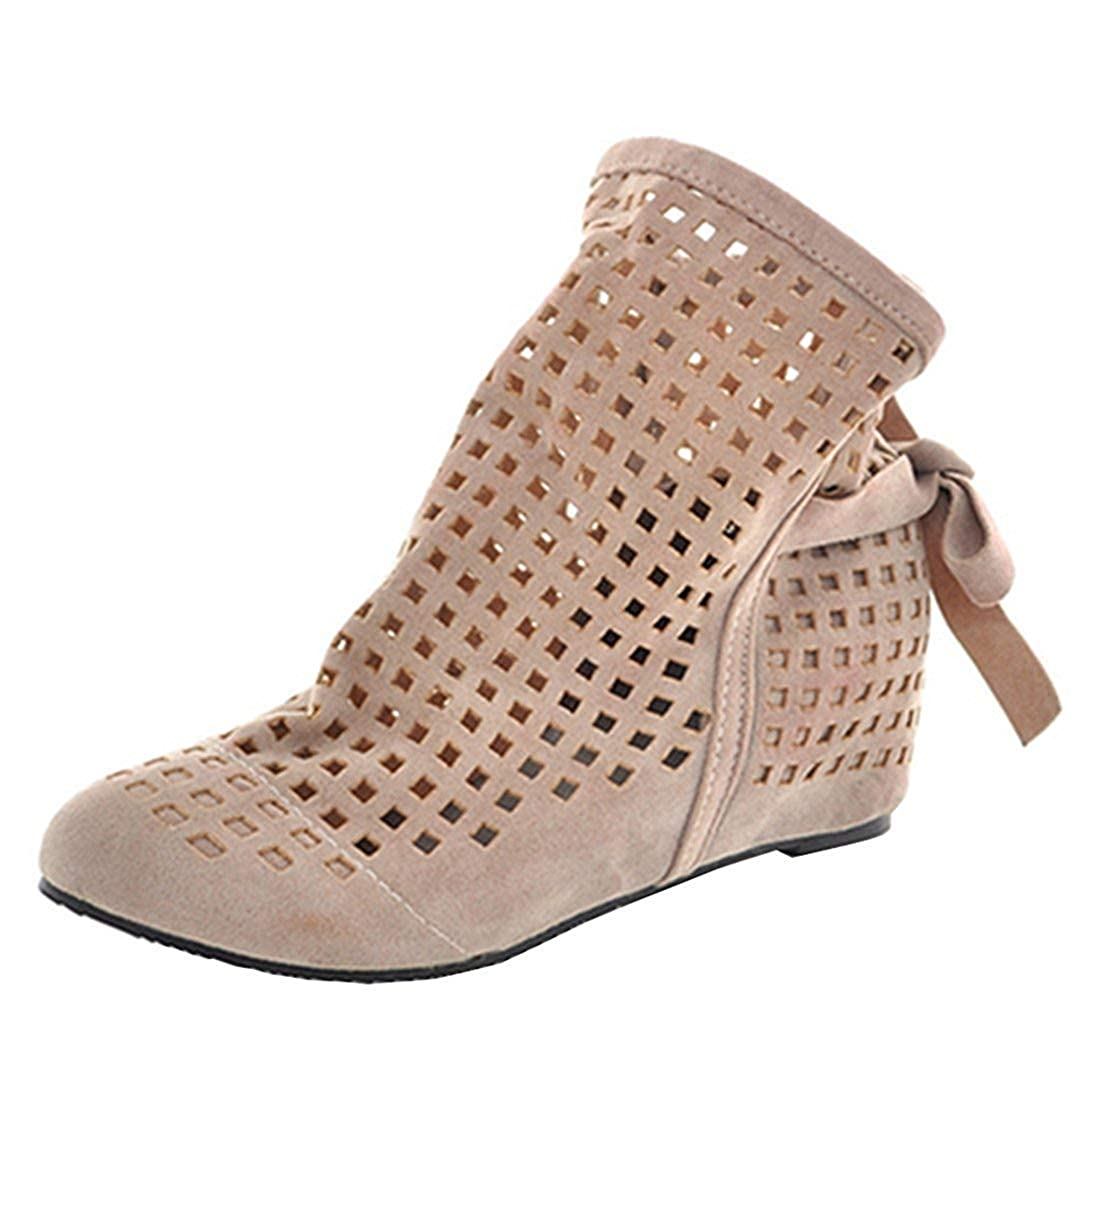 KIKIVA Women Flat Ankle Boots Hollow Lace Up Summer Closed Toe Dress Booties